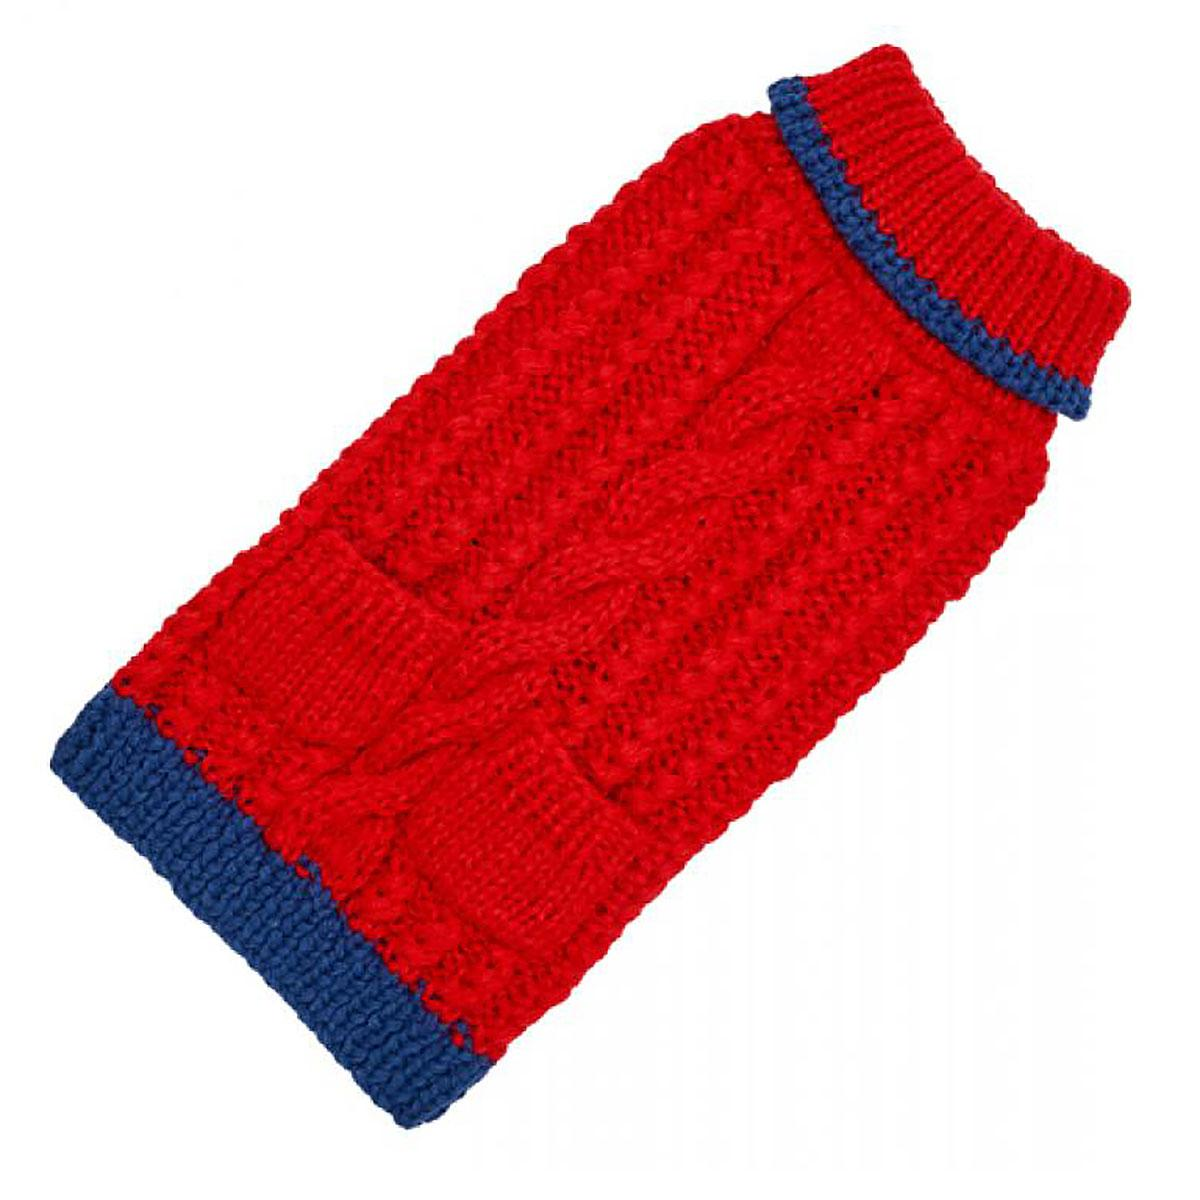 Hand Knit Dog Sweater by Up Country - Red Classic Cable